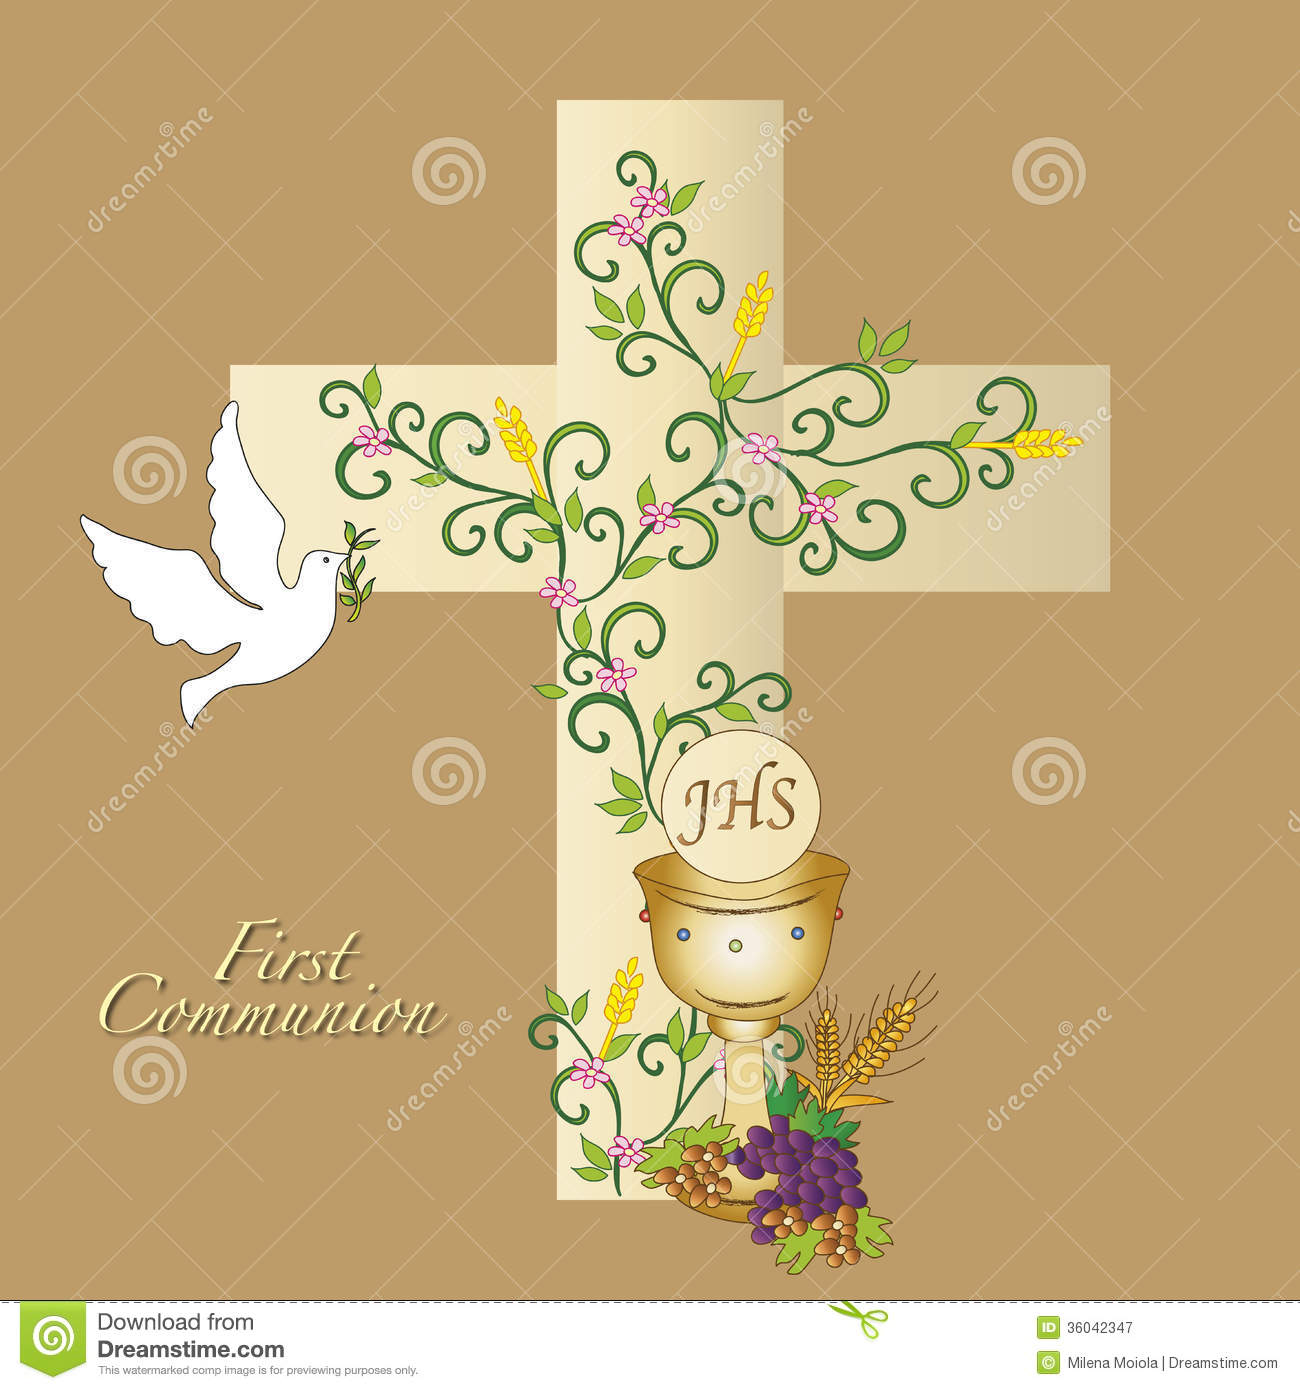 First Communion Royalty Free Stock Photography - Image